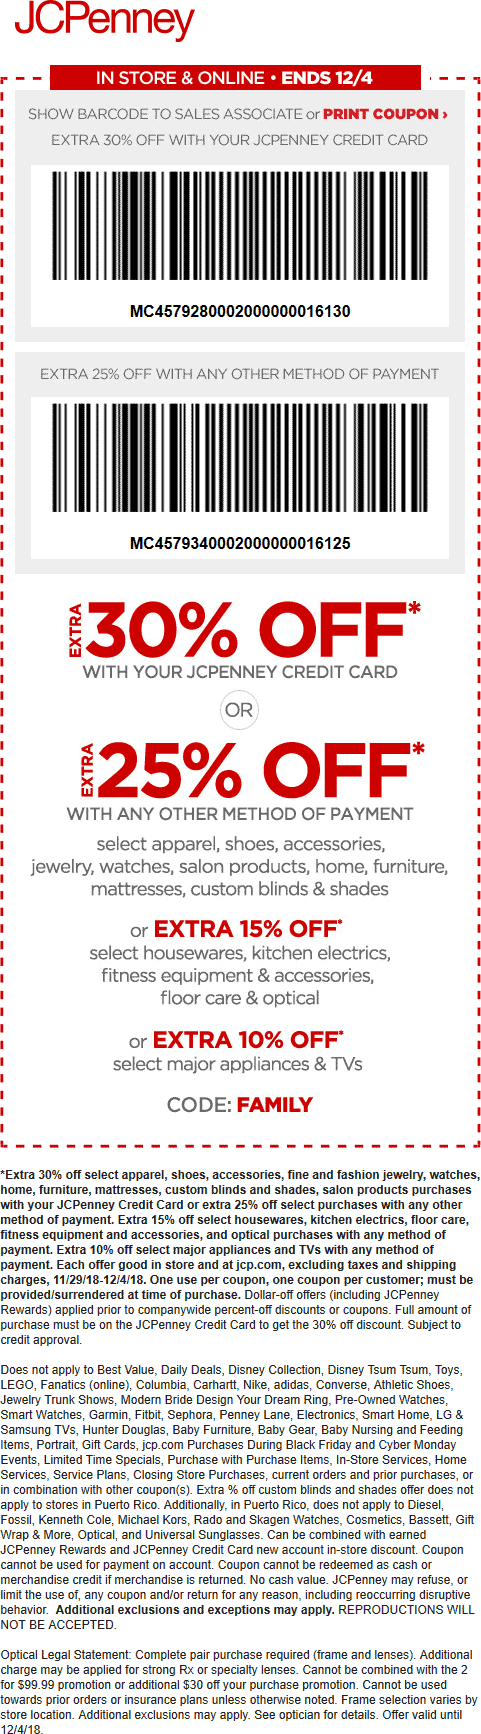 JCPenney Coupon July 2020 25% off at JCPenney, or online via promo code FAMILY